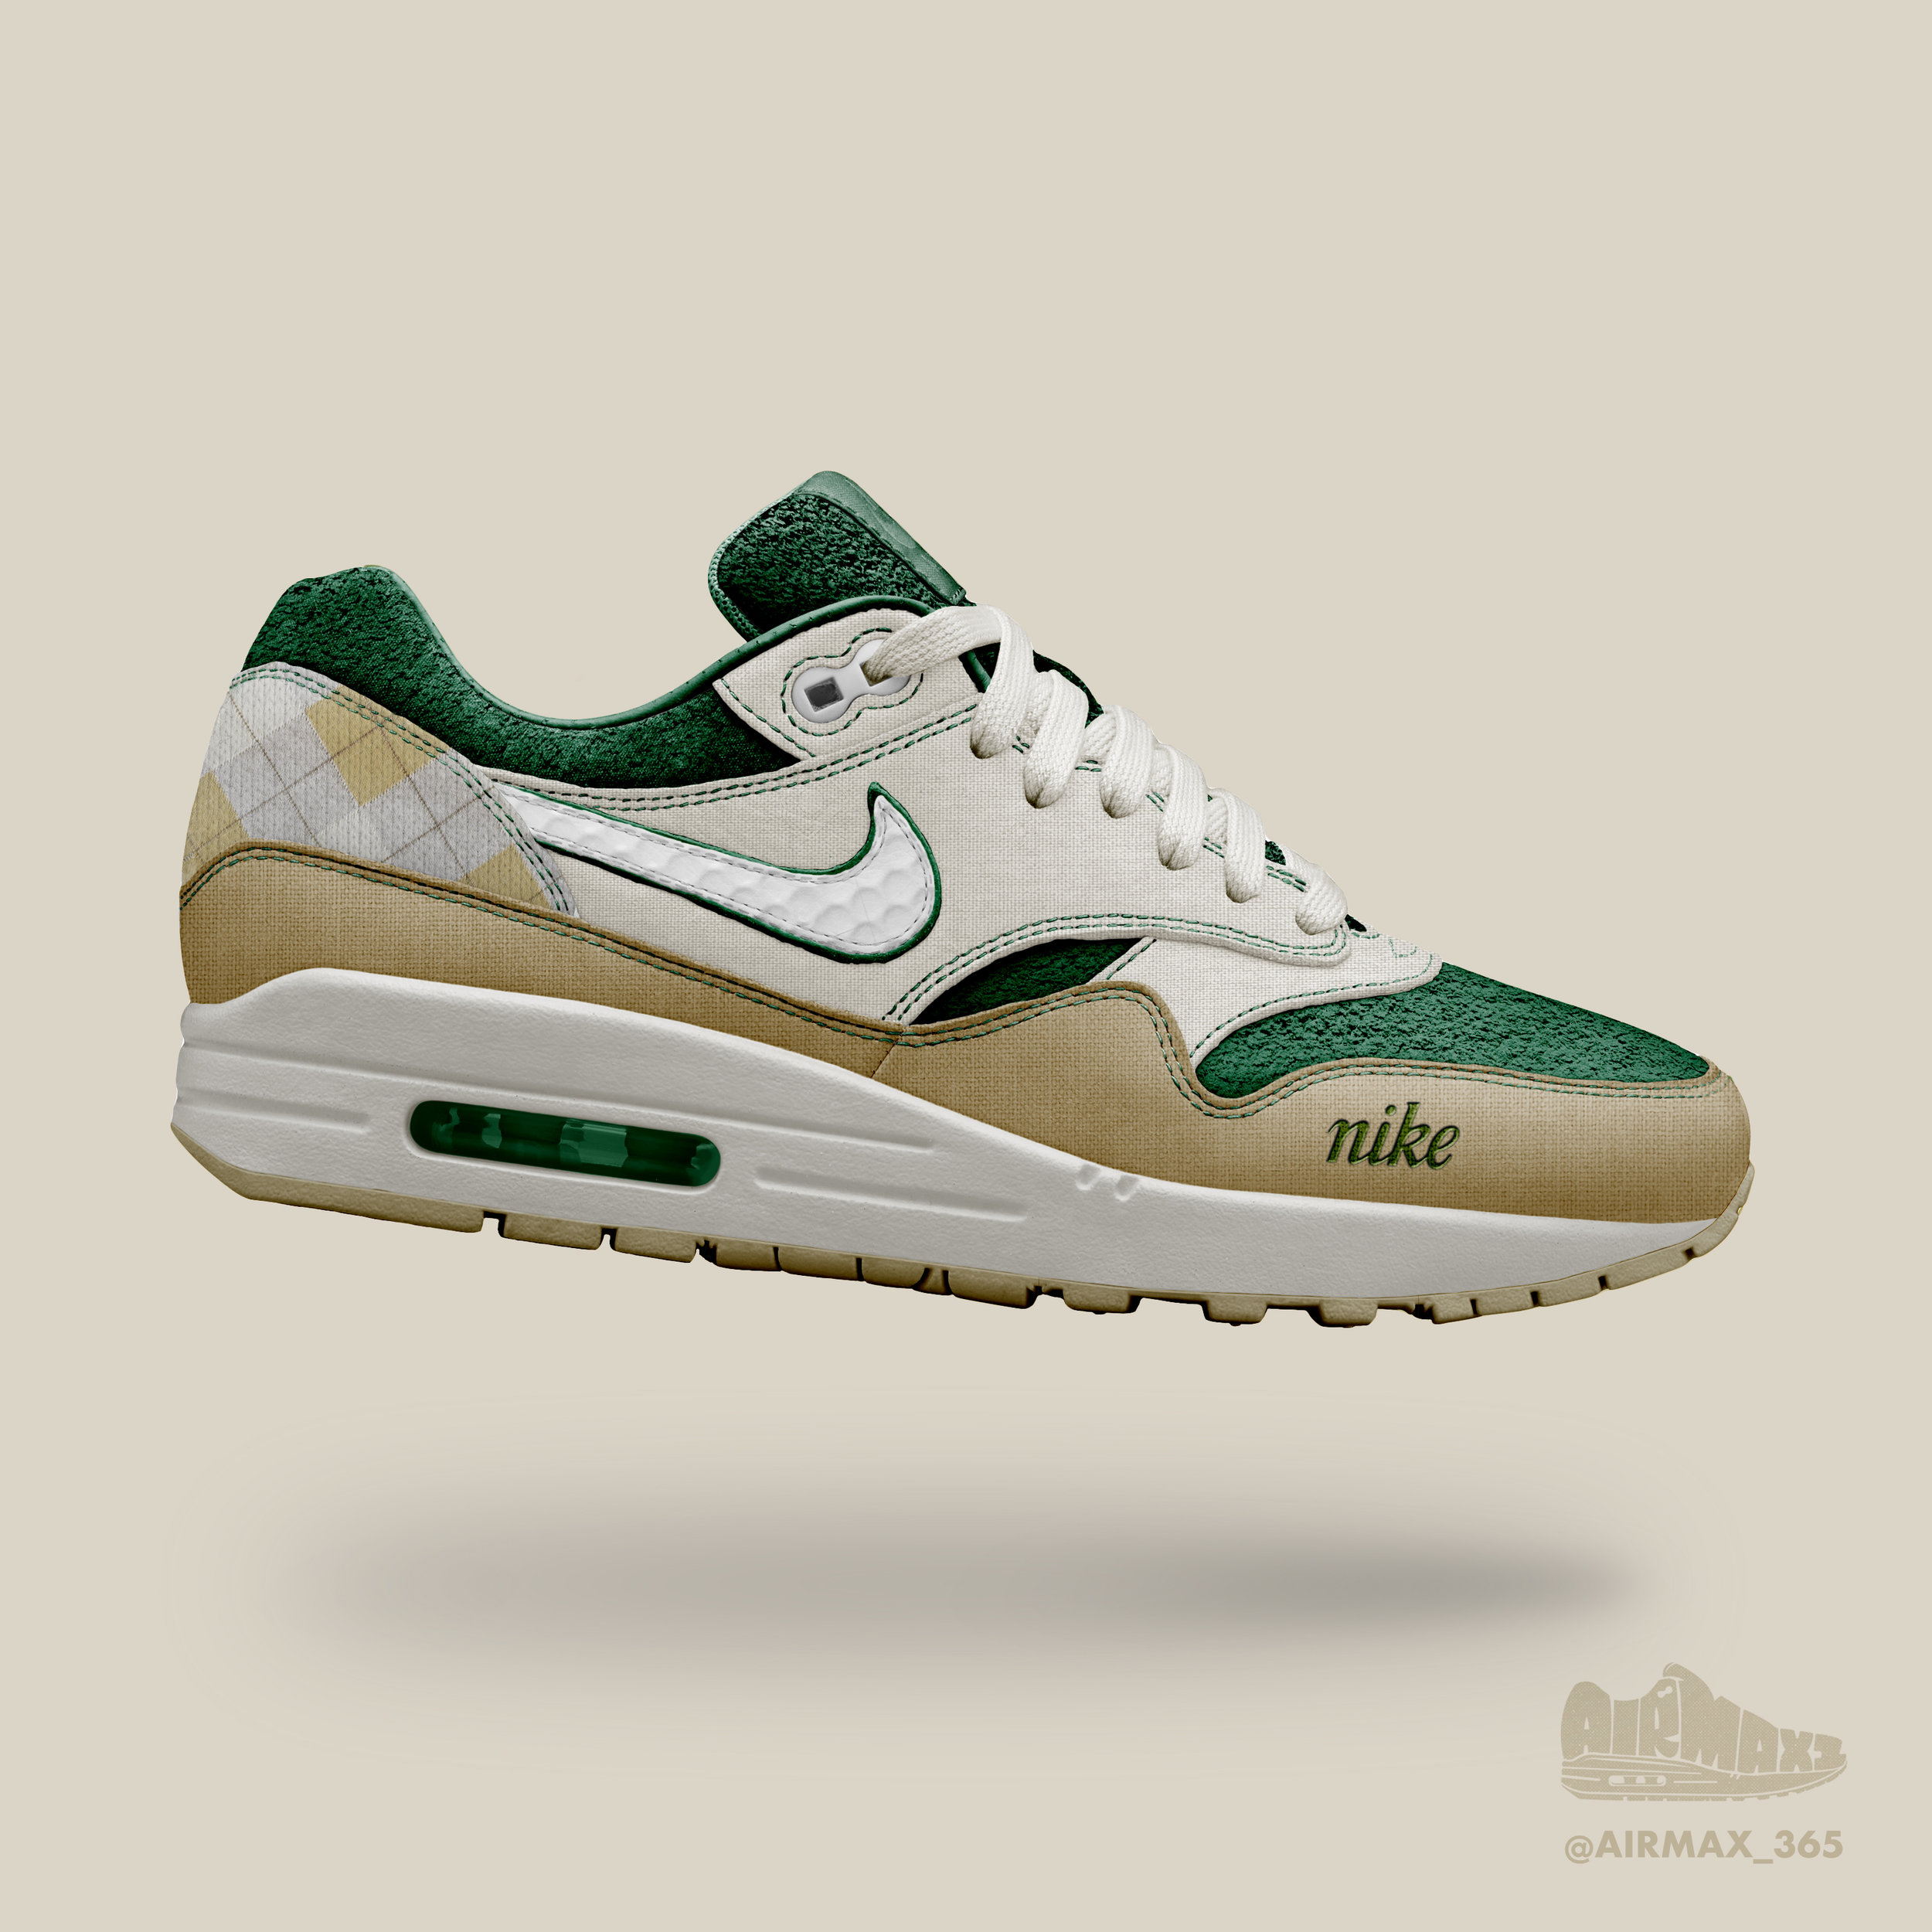 Day 259: Air Max 1 Country Club